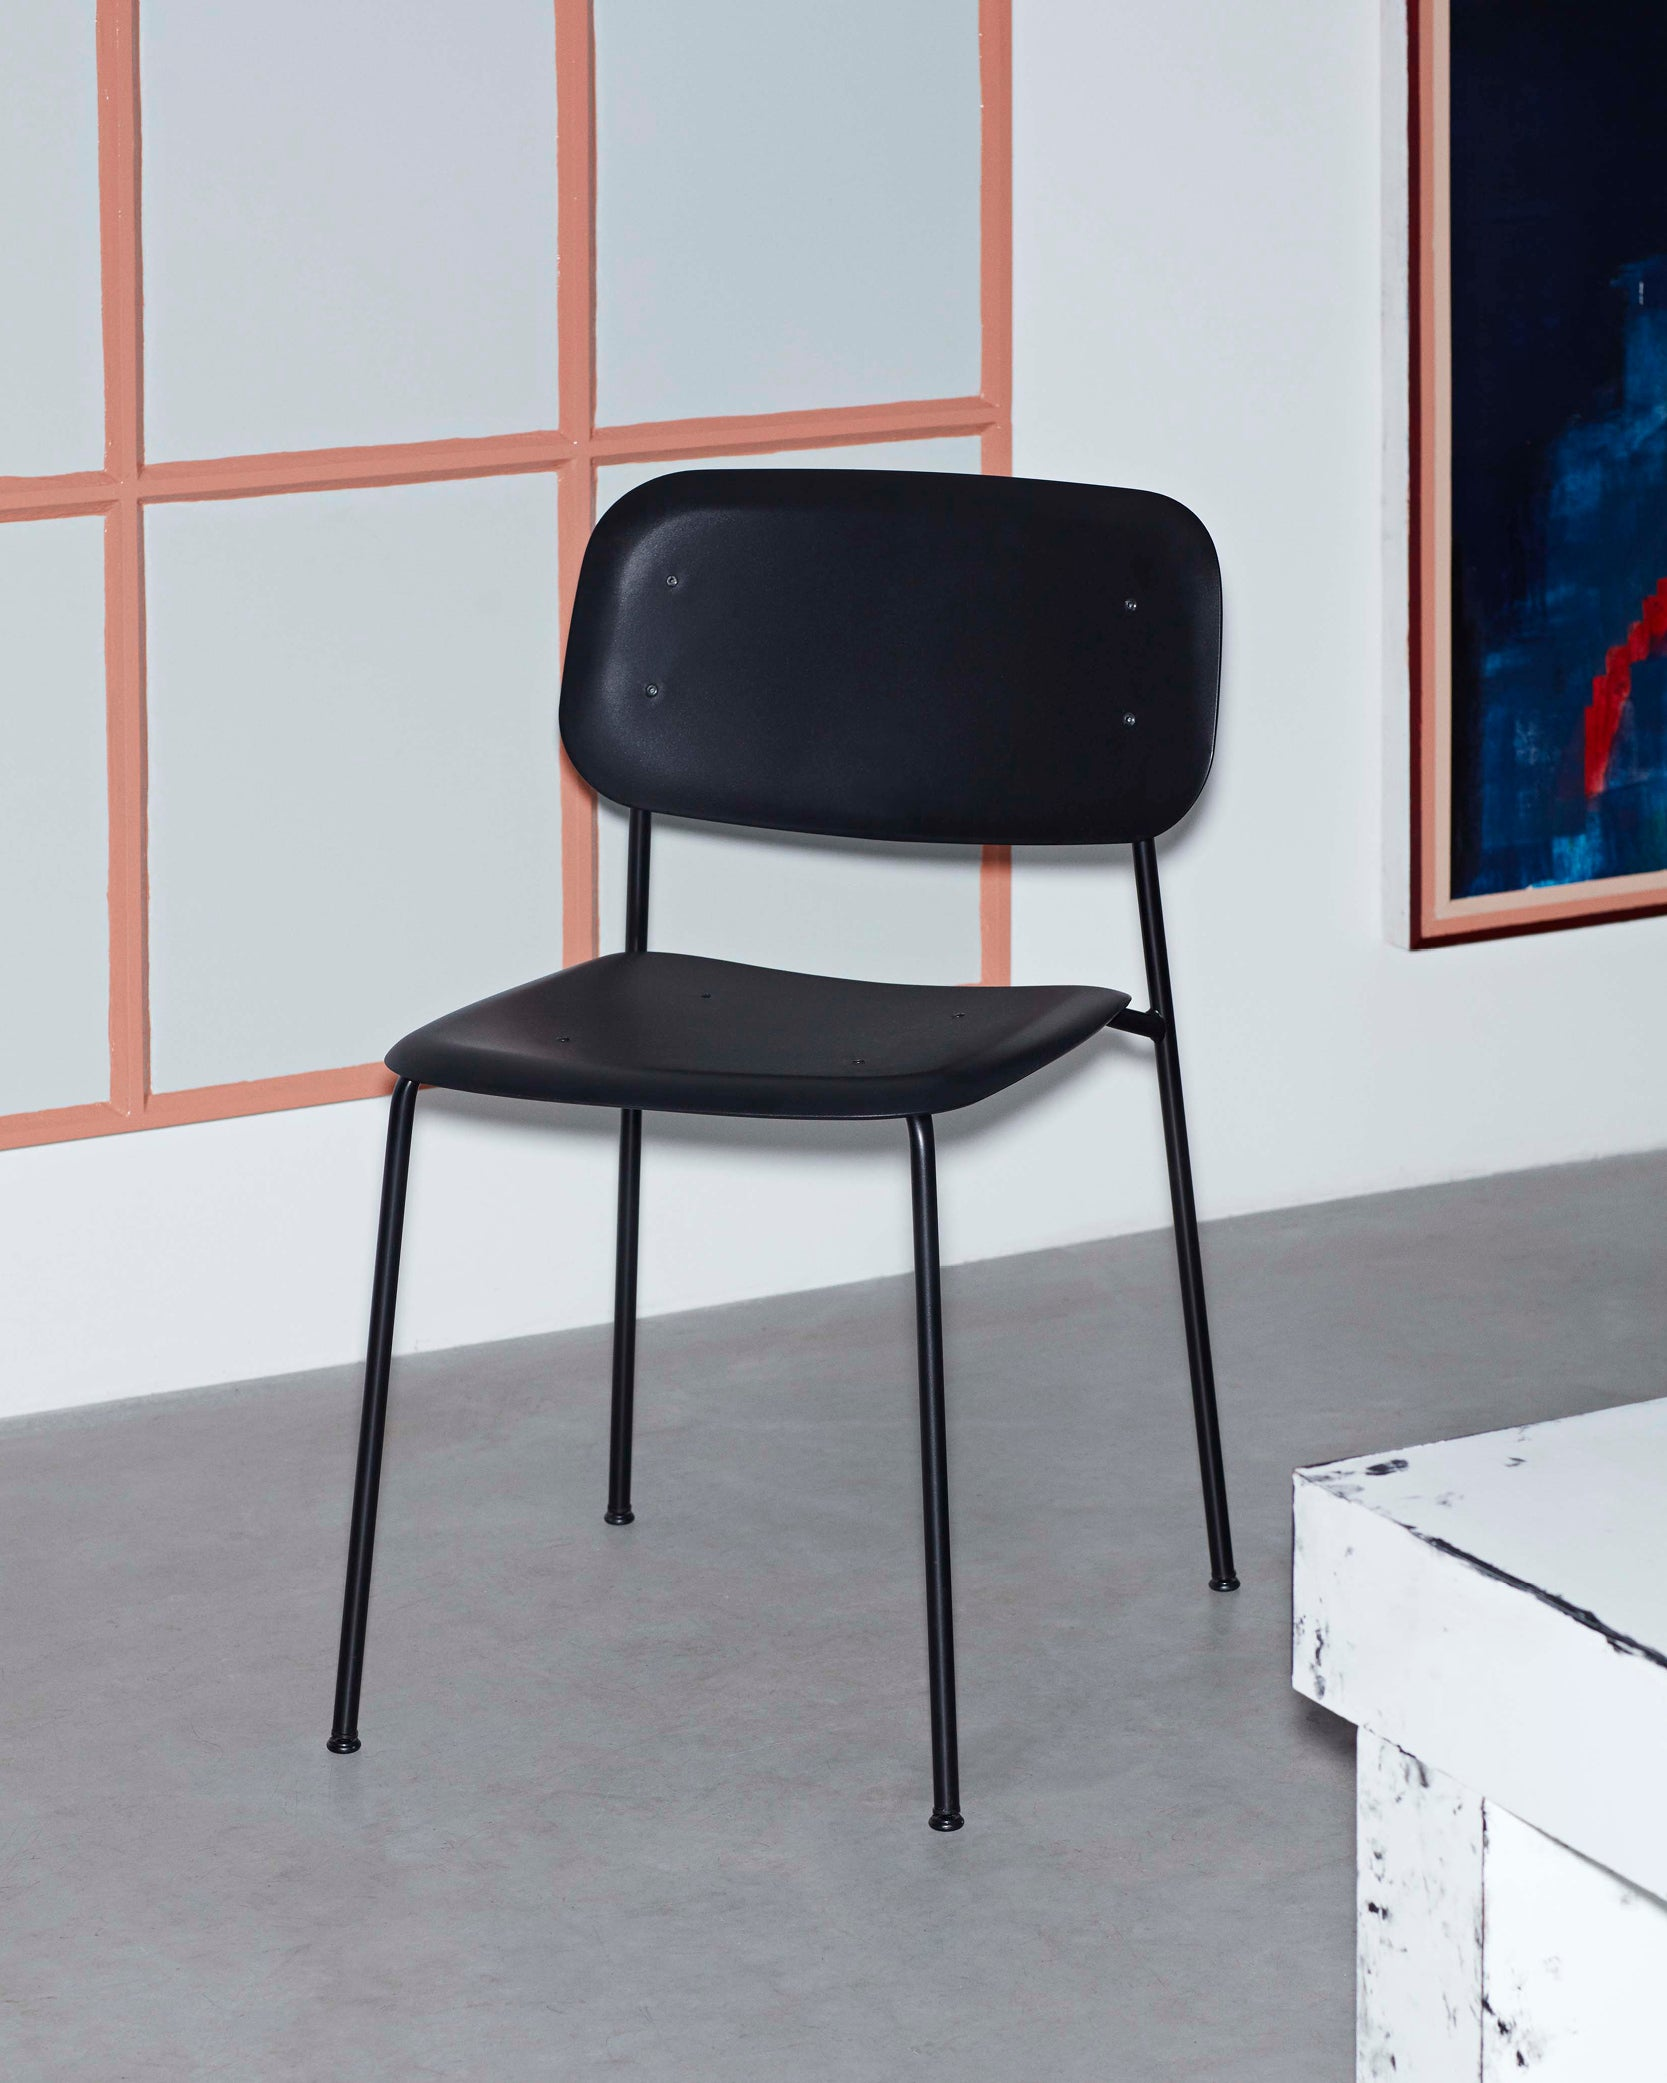 Silla Soft Edge P10| Soft Edge P10 Chair